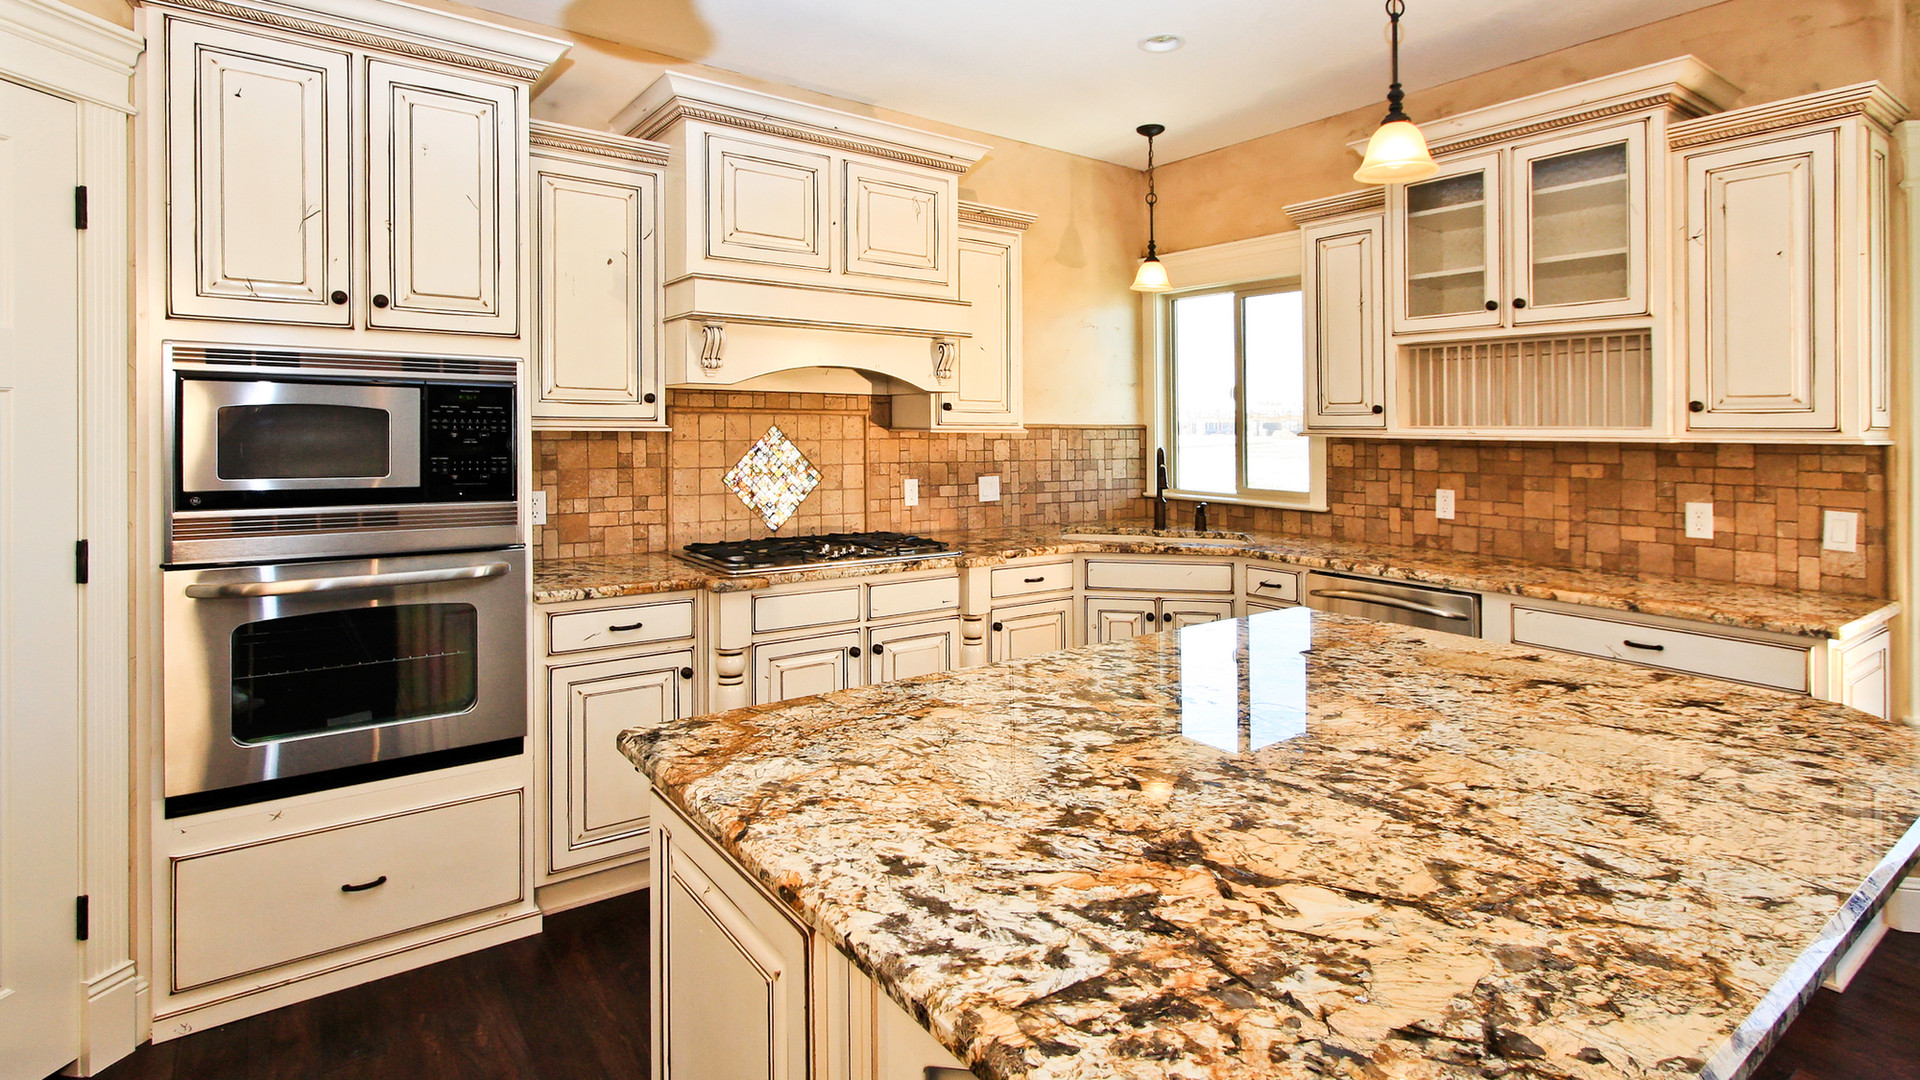 spacious-white-luxury-kitchen-5844995.jp